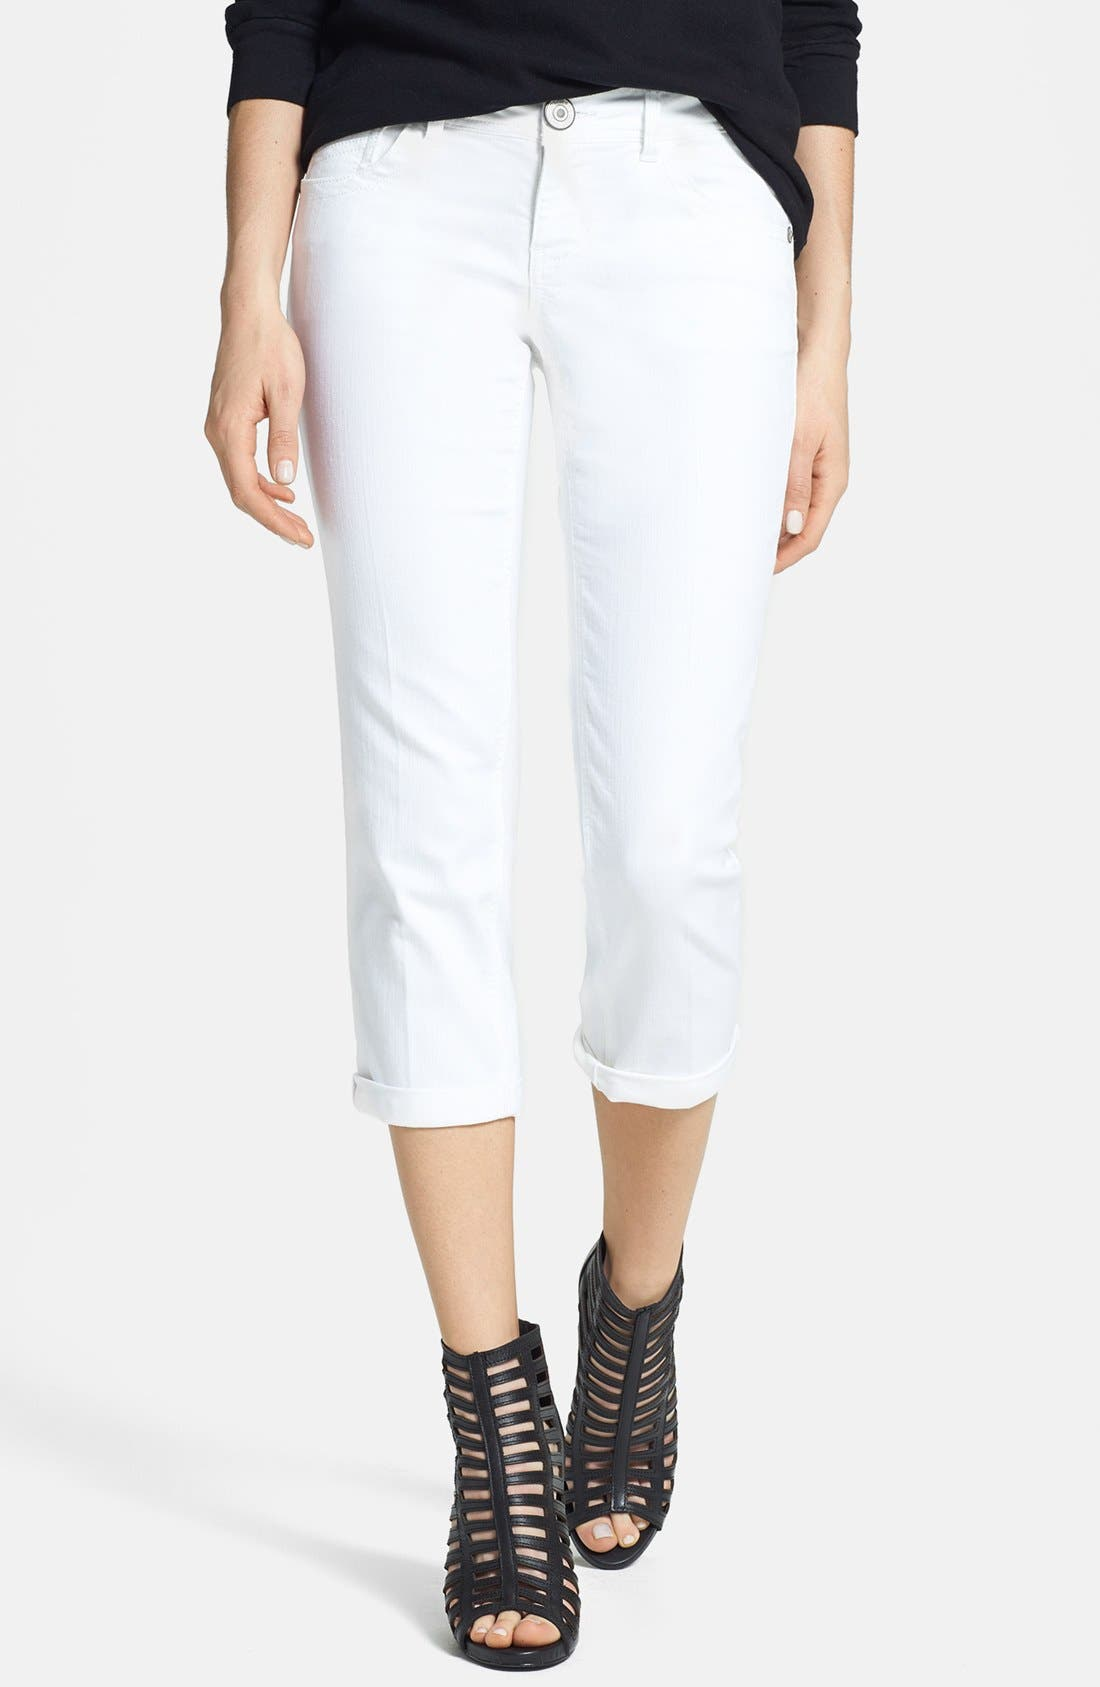 Alternate Image 1 Selected - Jolt Crop Jeans (White) (Juniors) (Online Only)